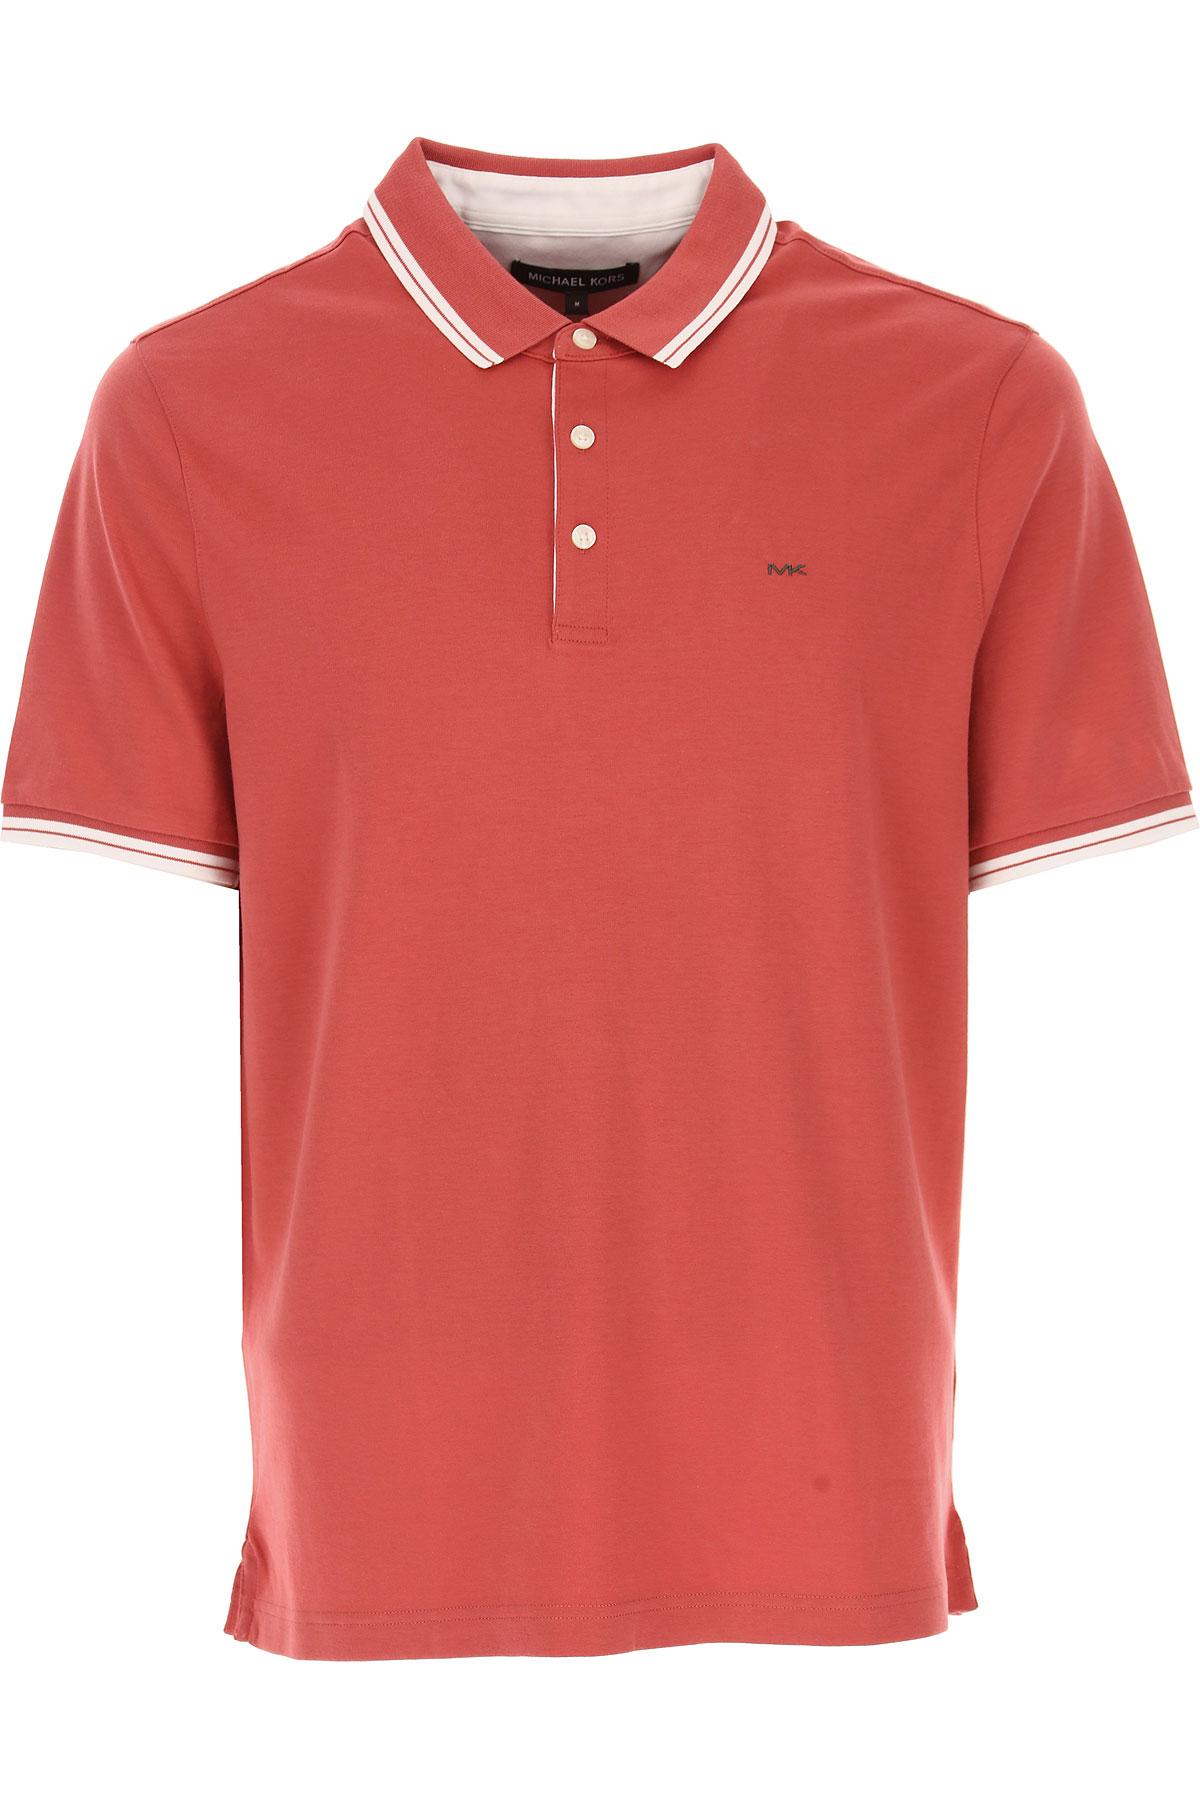 Michael Kors Polo Shirt for Men On Sale in Outlet, Nantucket Red, Cotton, 2019, M S